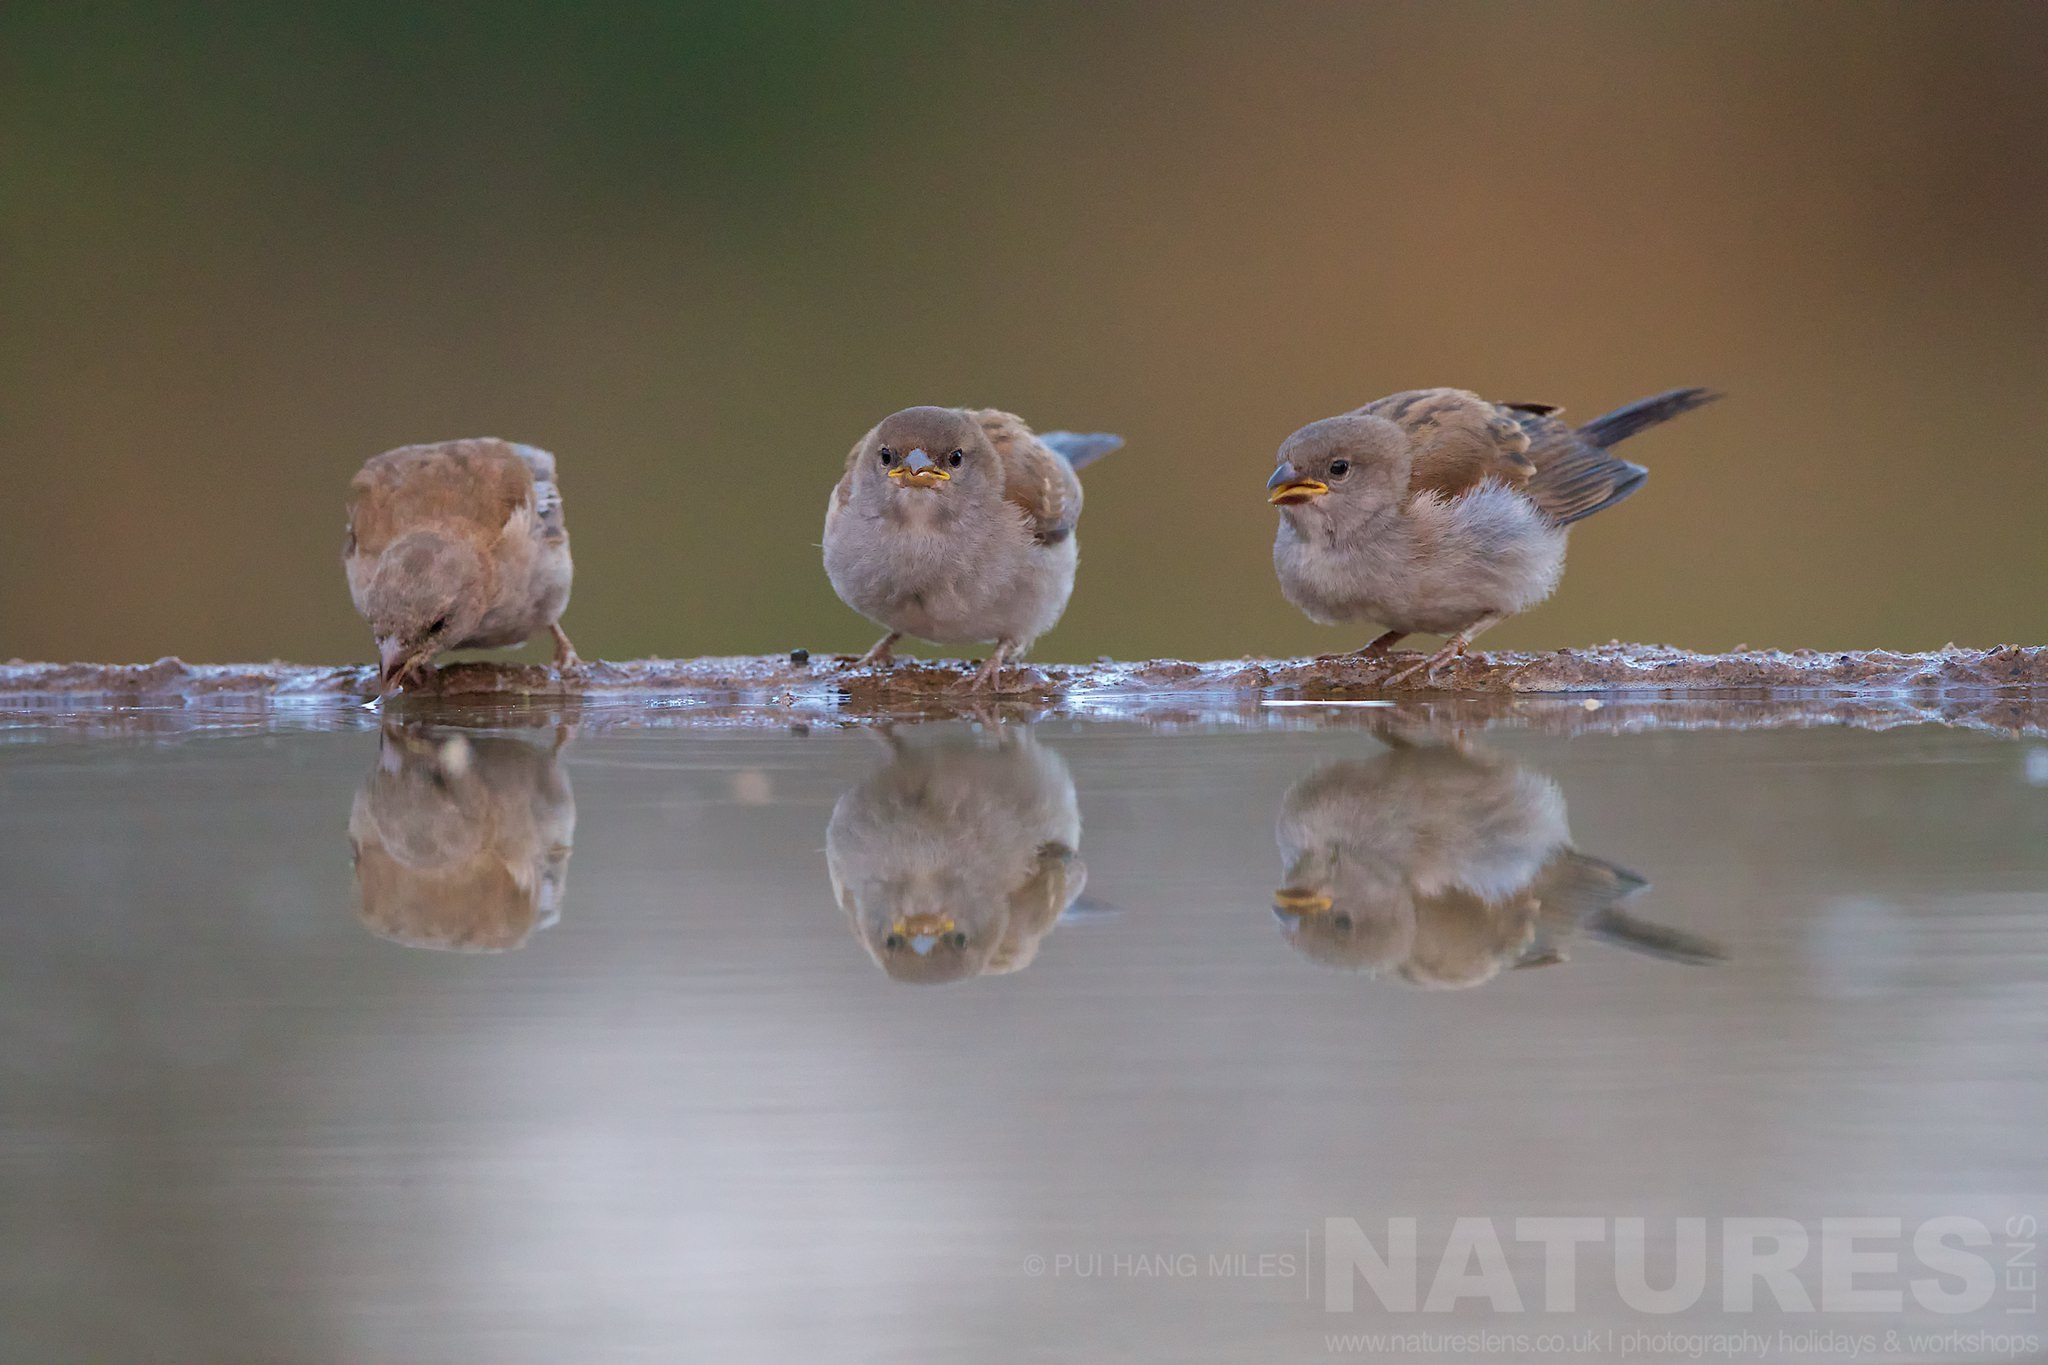 A Trio Of Quelea   Captured During The Natureslens South African Wildlife Zimanga Photography Holiday